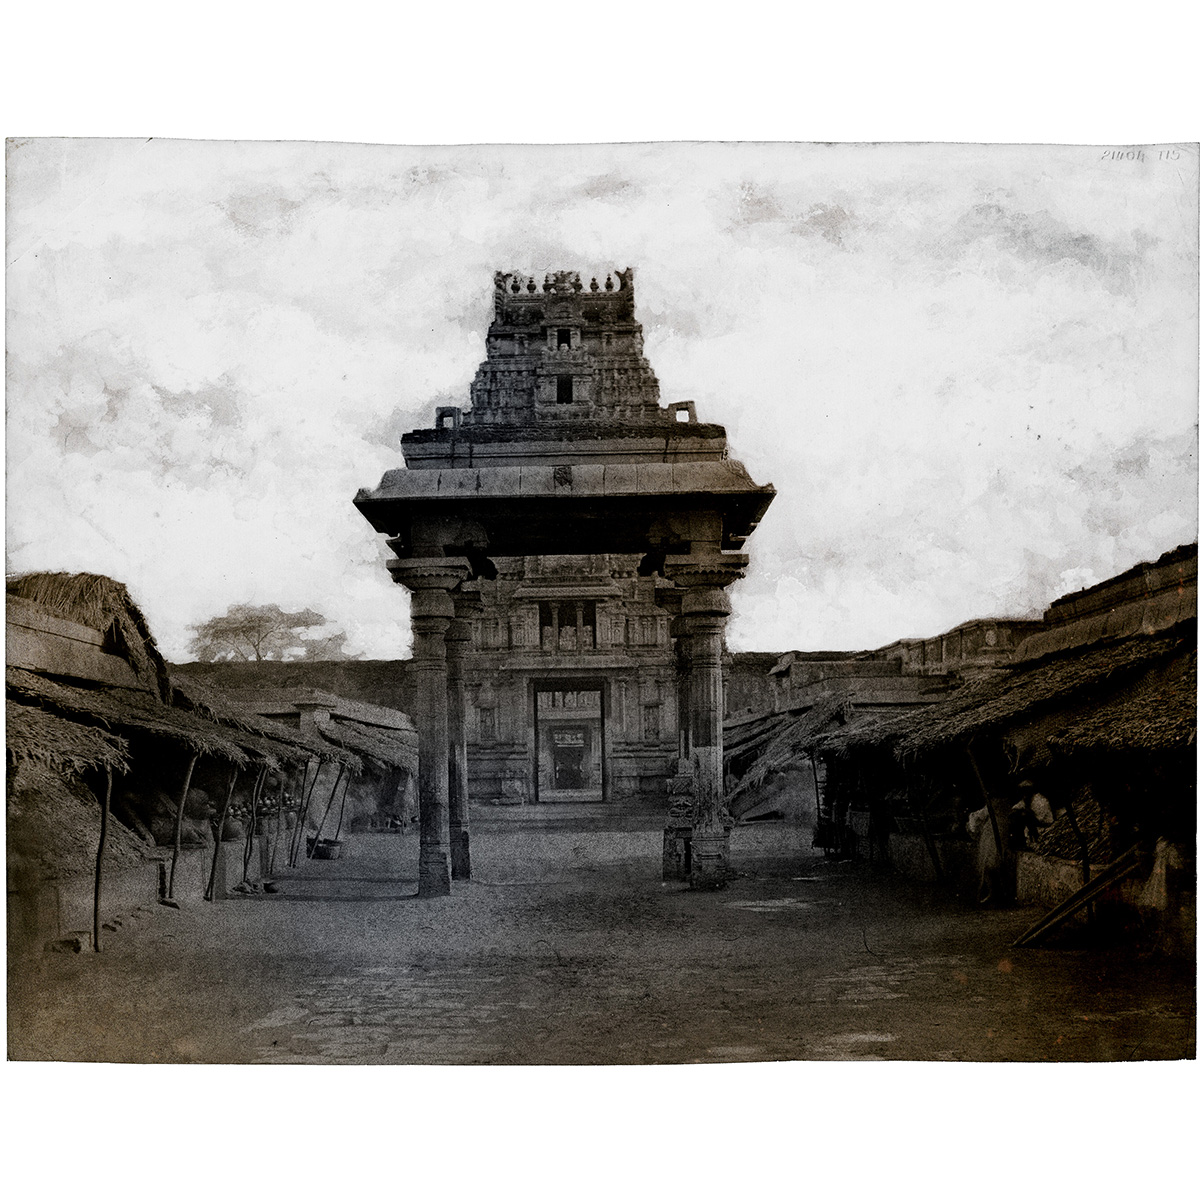 Tripe_12 (Seeringham. Munduppum inside gateway) by Thomas Ruff – Limited edition print